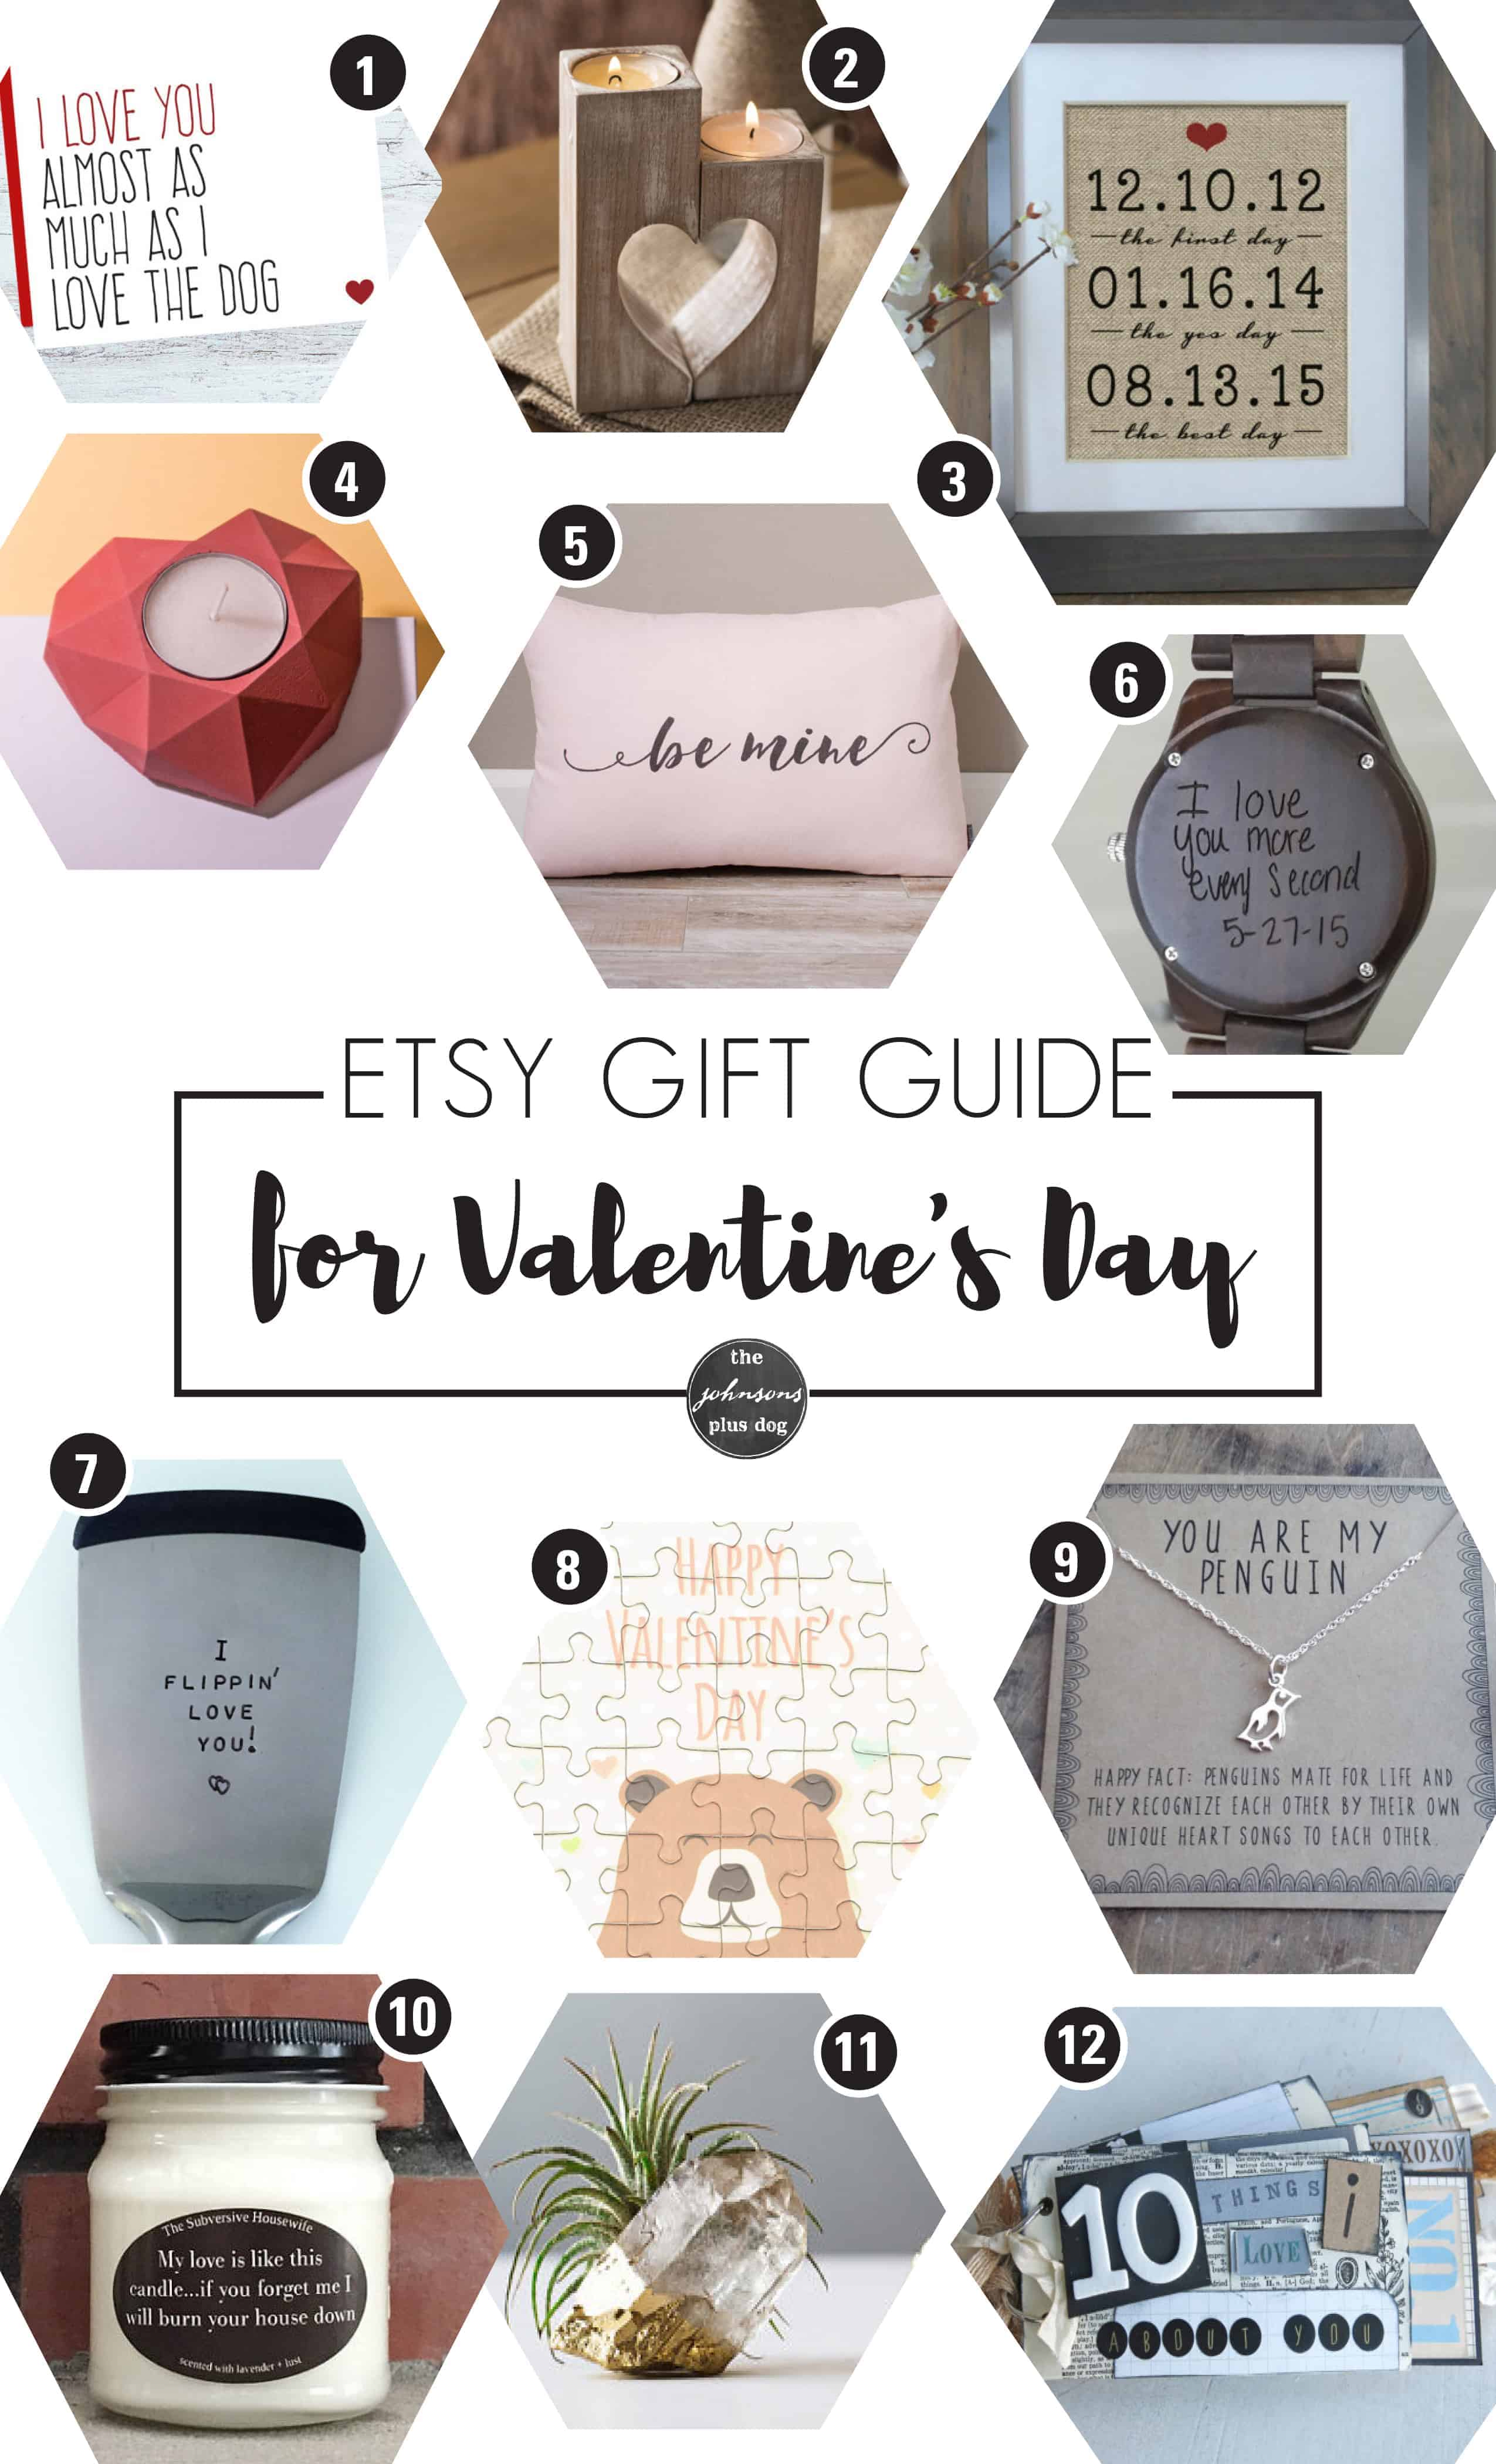 Unique Valentine's Day Gifts from Etsy